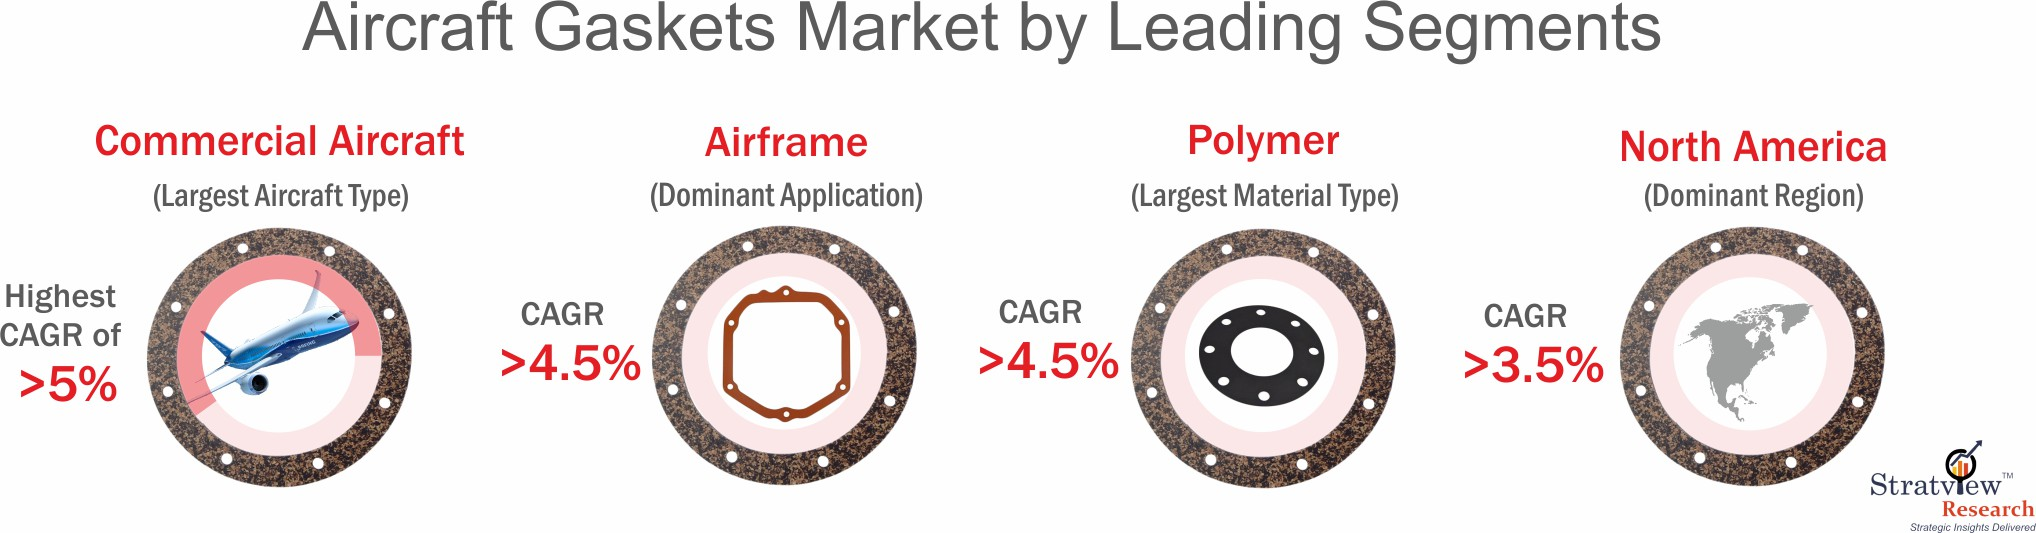 Aircraft gaskets market segmentation